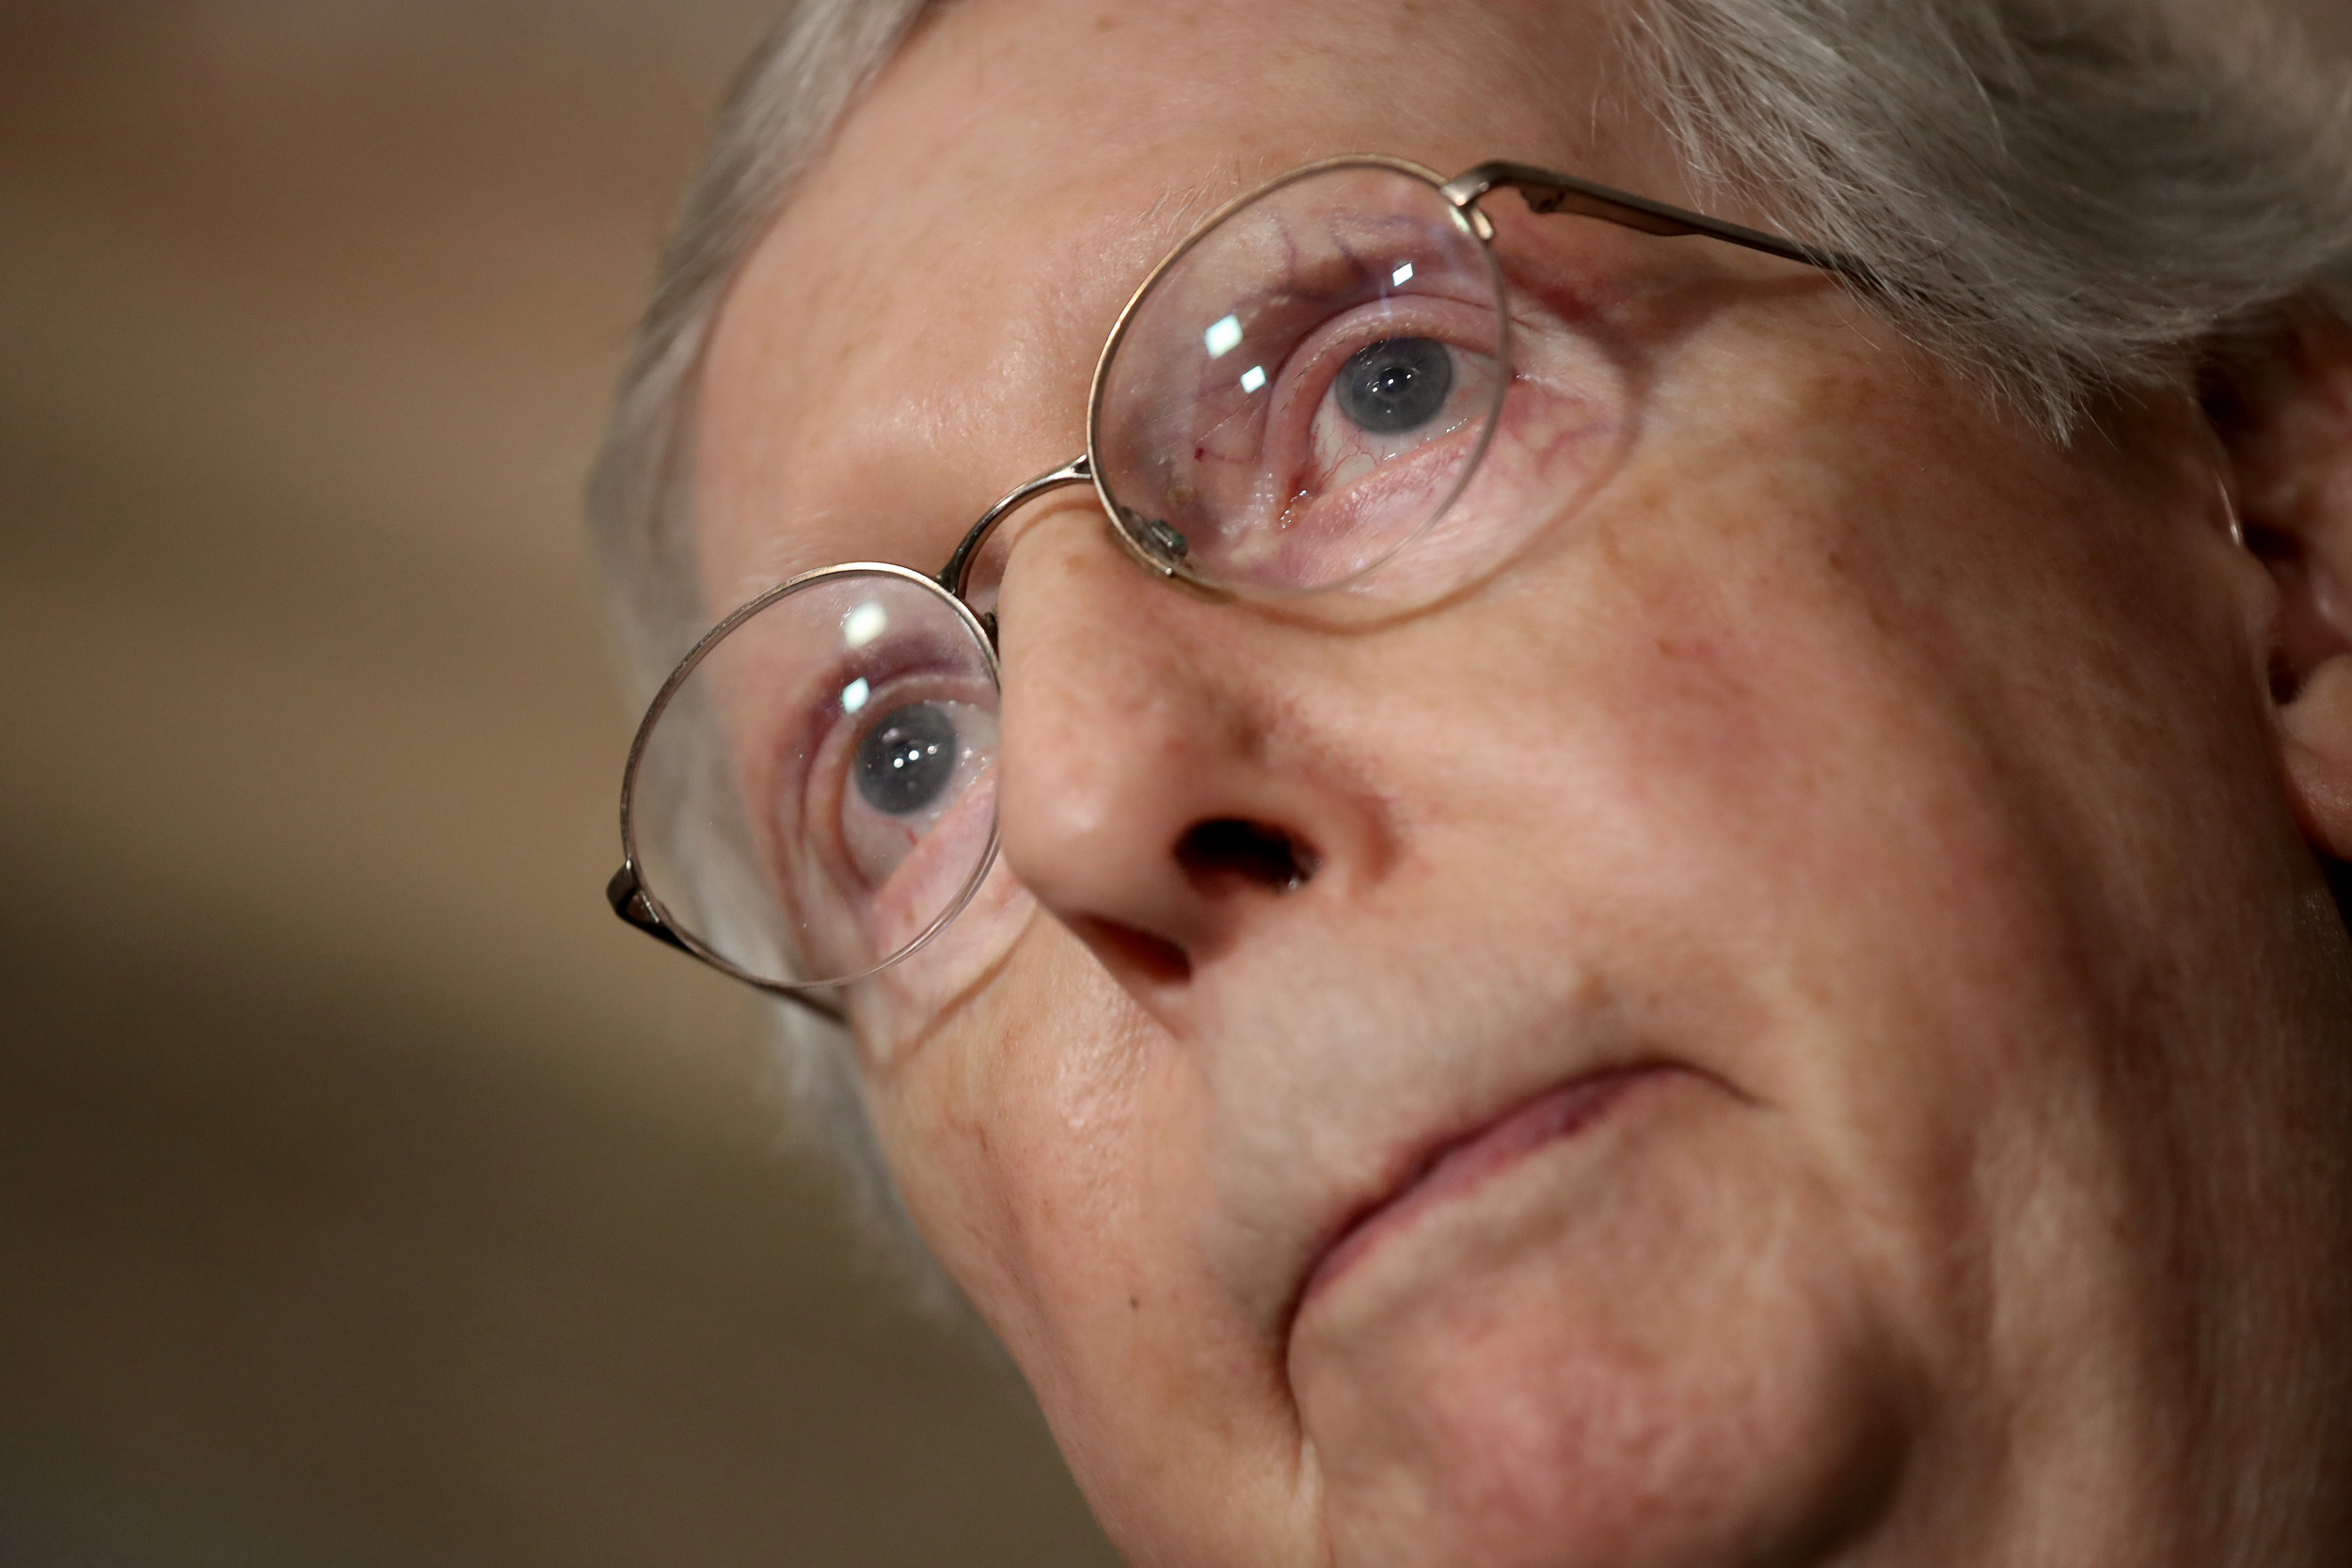 Mitch McConnell Warns China Is 'Playing With Fire' in Hong Kong, Wants Trump to Take 'Forceful Action' ...